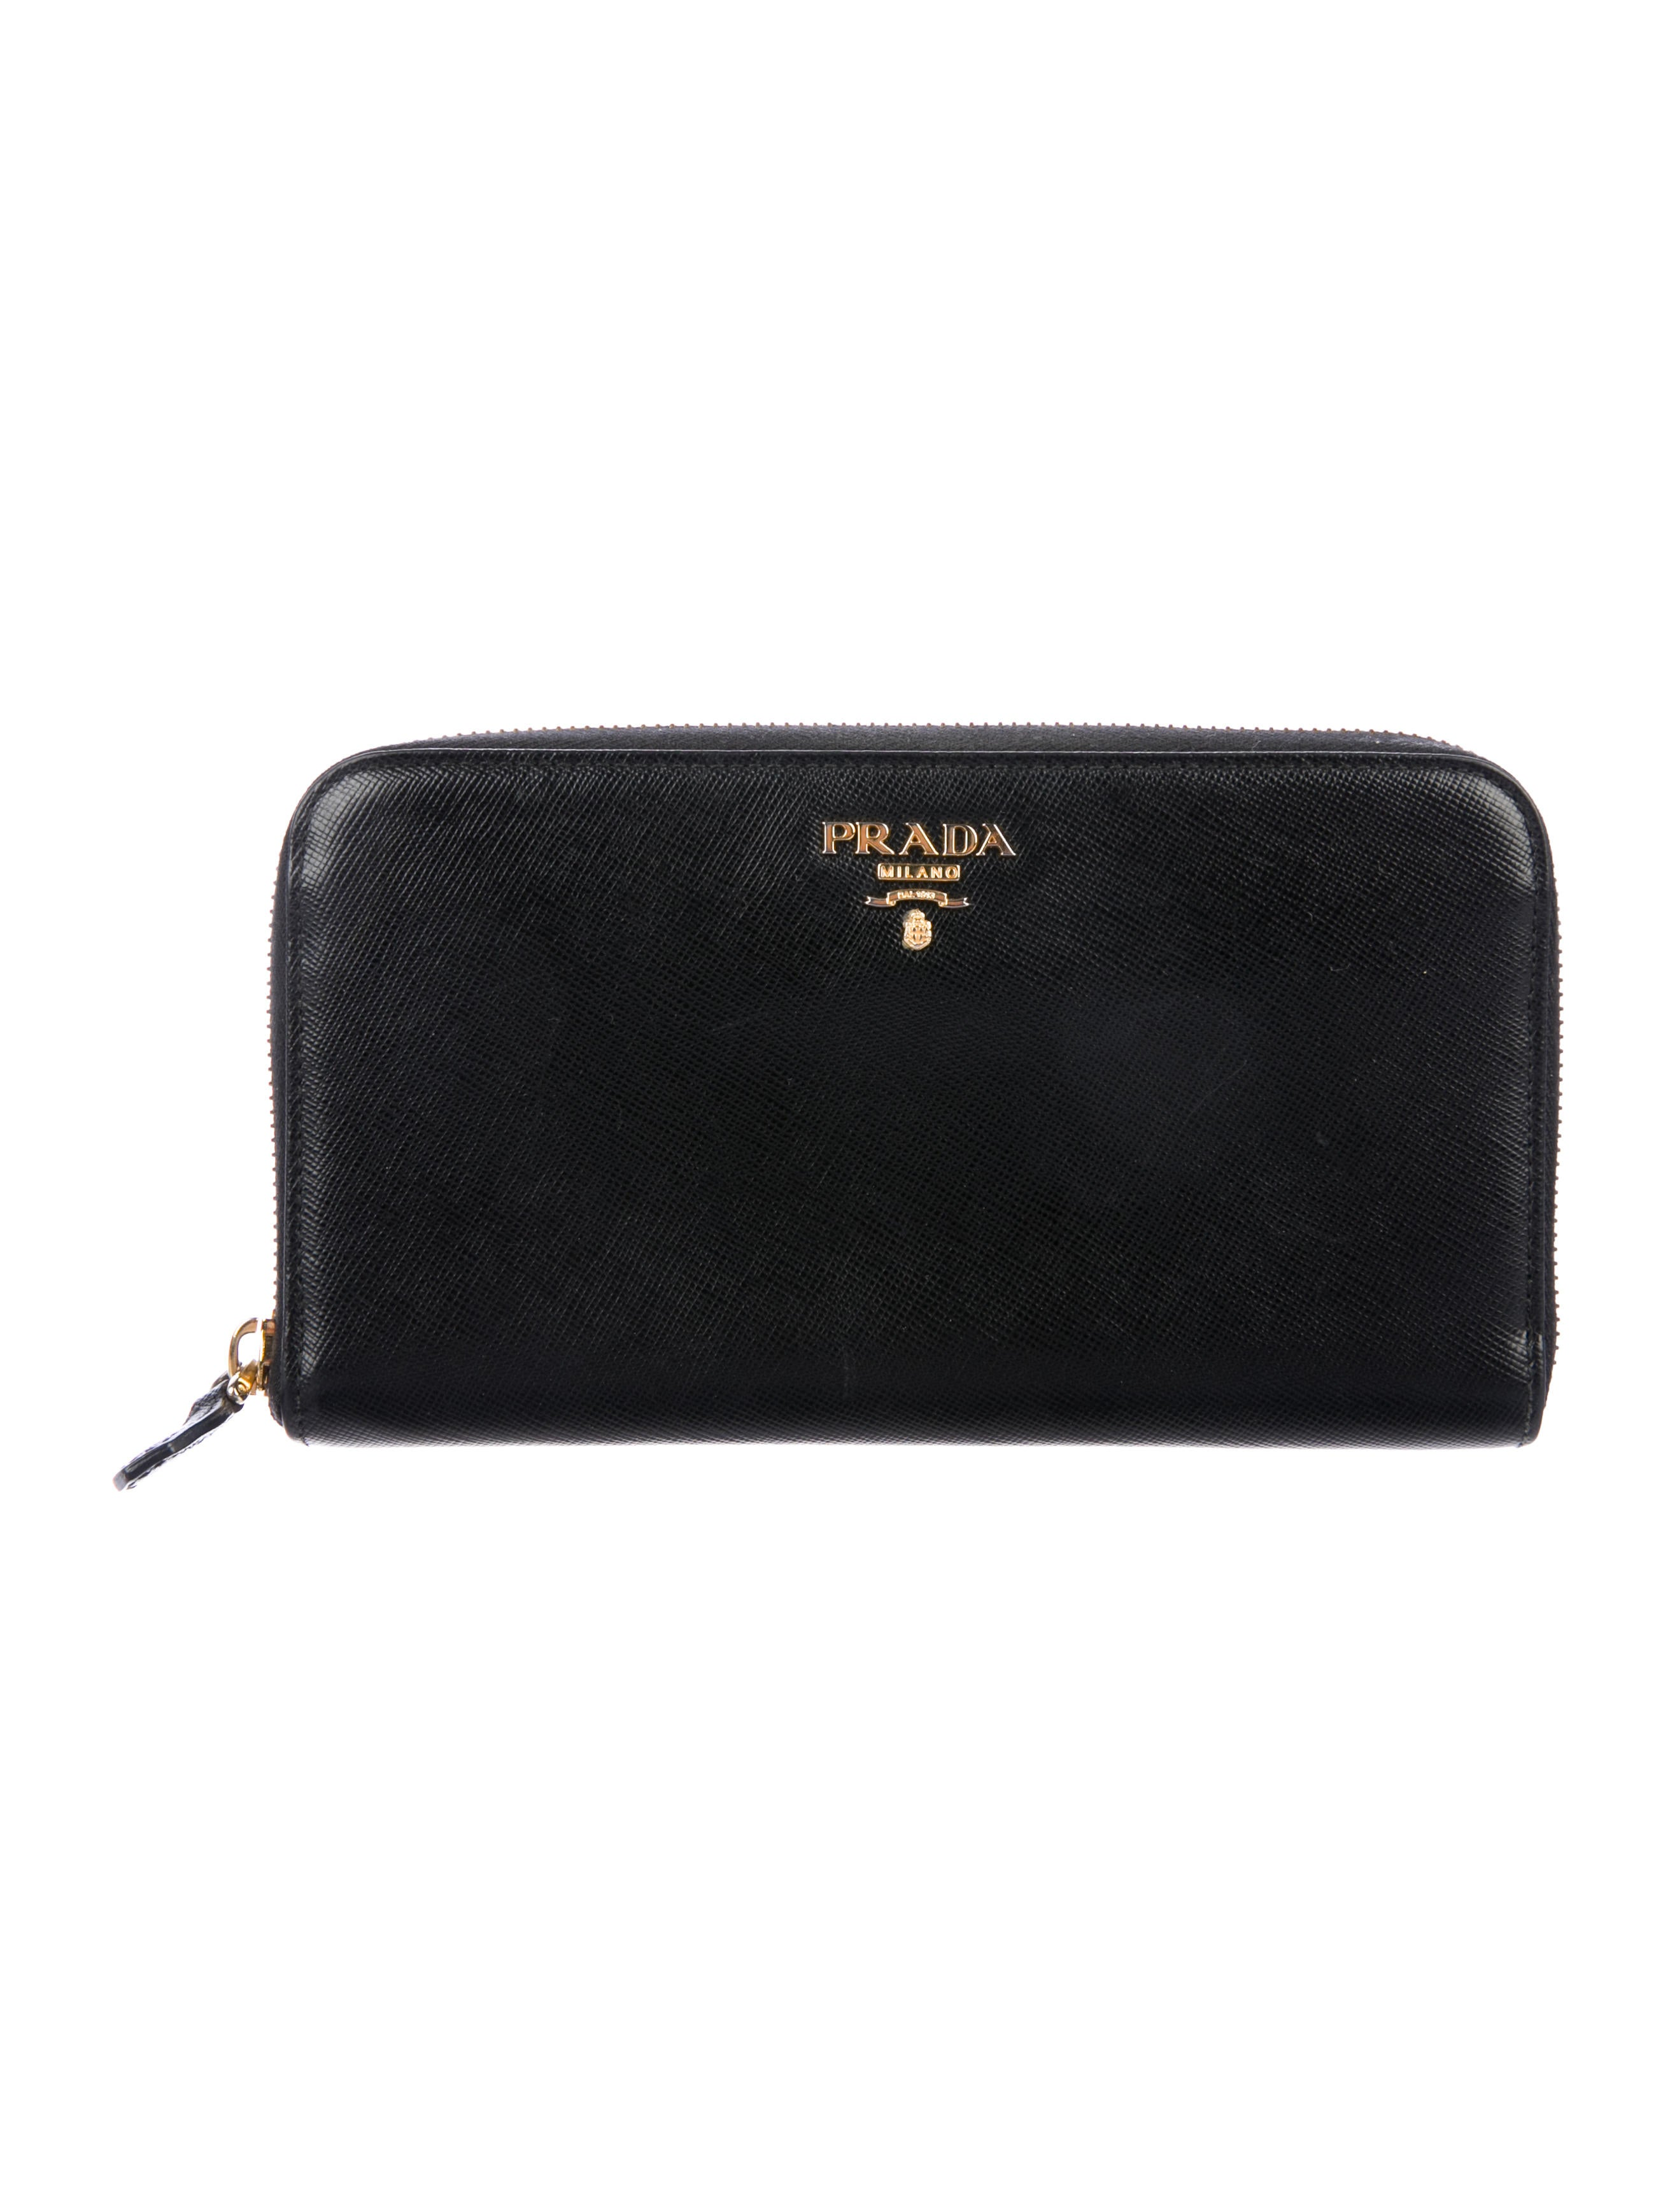 a78dcc24d903 Prada Saffiano Zip-Around Wallet - Accessories - PRA213794 | The ...